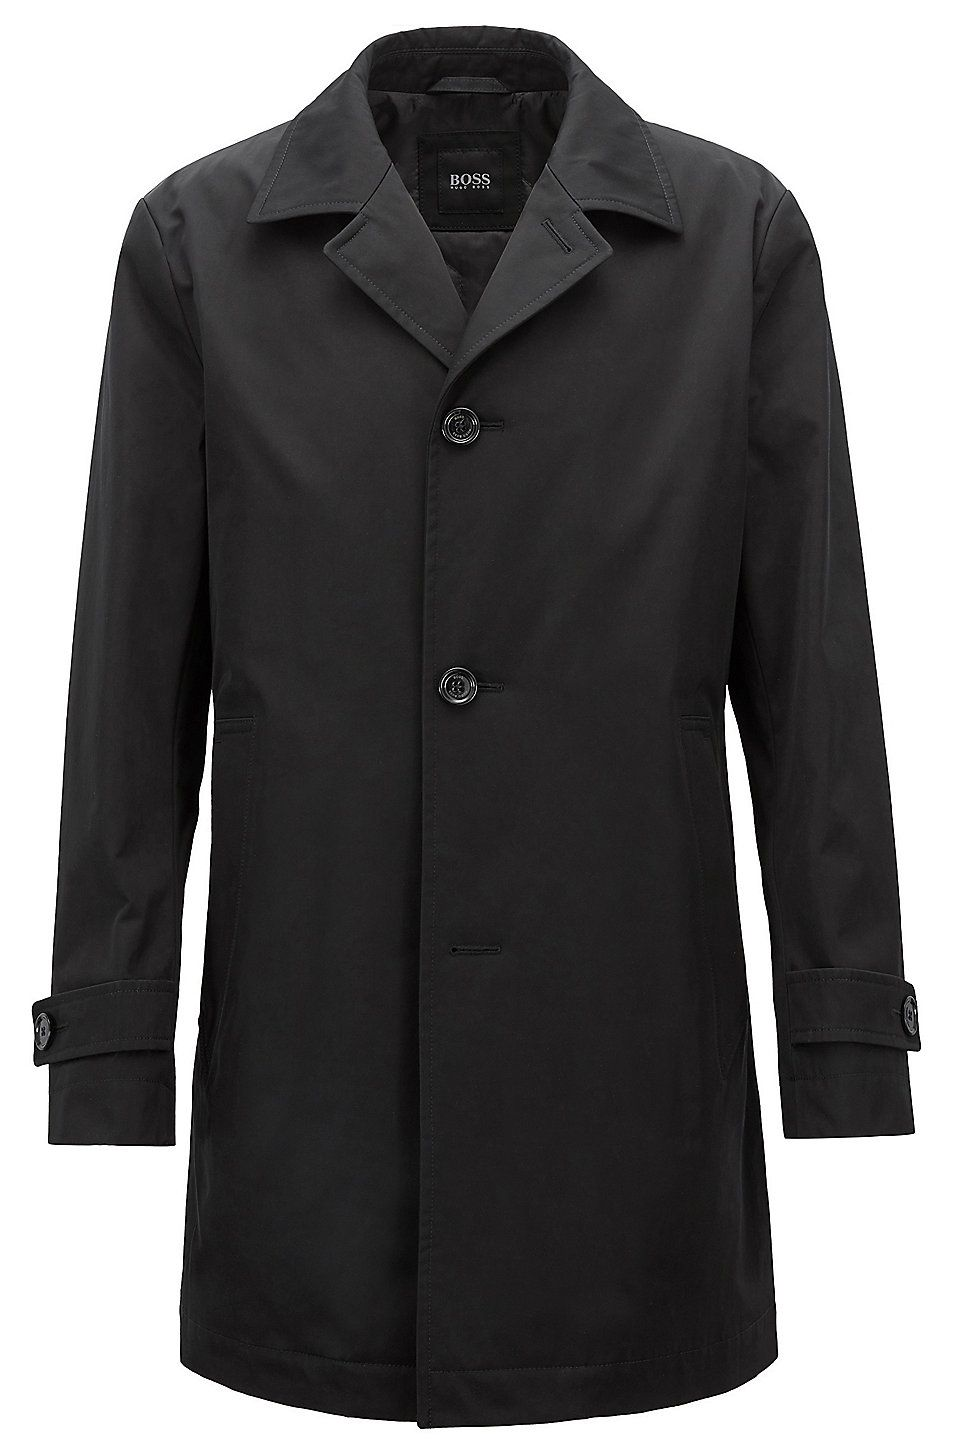 Hugo Boss Car Coat In Water Repellent Technical Twill Black Raincoats From Boss For Men In The Official Hugo Boss Online Car Coat Black Raincoat Jacket Style [ 1456 x 960 Pixel ]